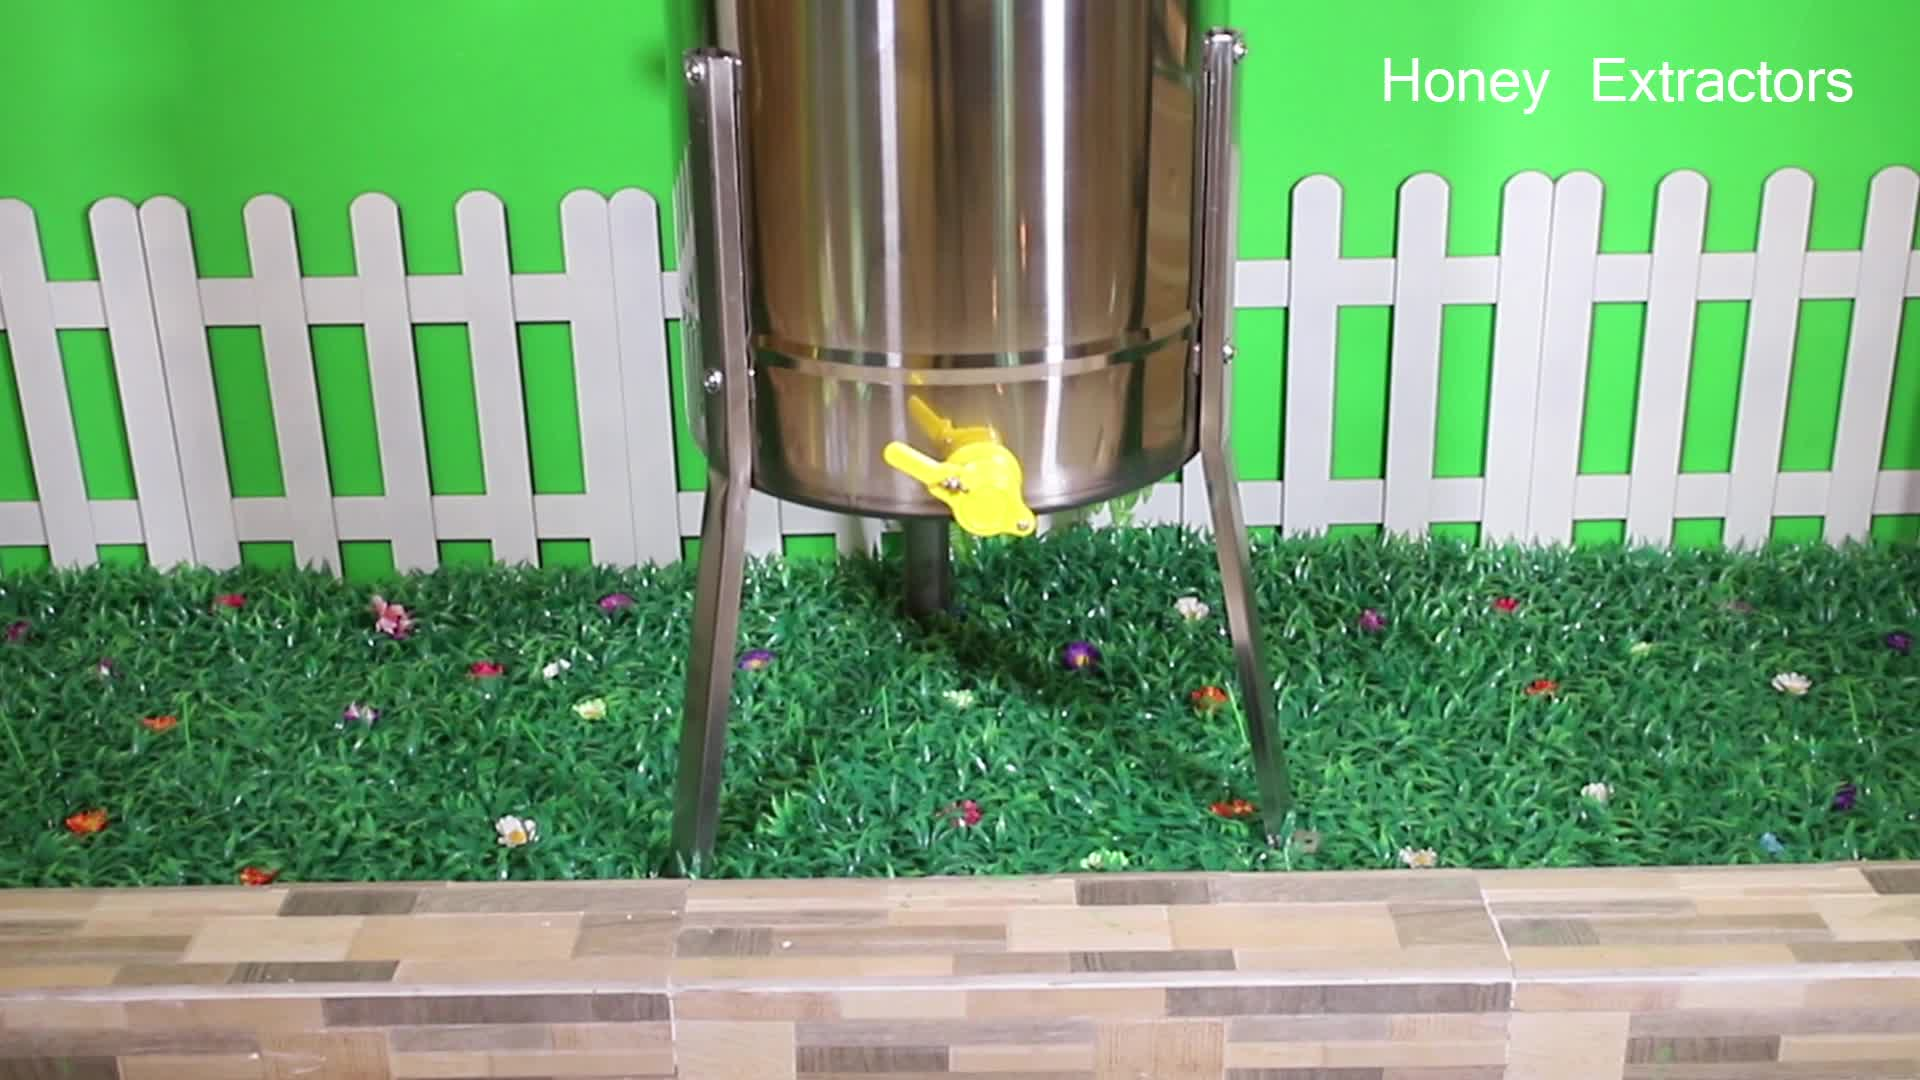 2 ,3, 4, 6 ,8, 12, 24 frames honey extractors used for honey extractor